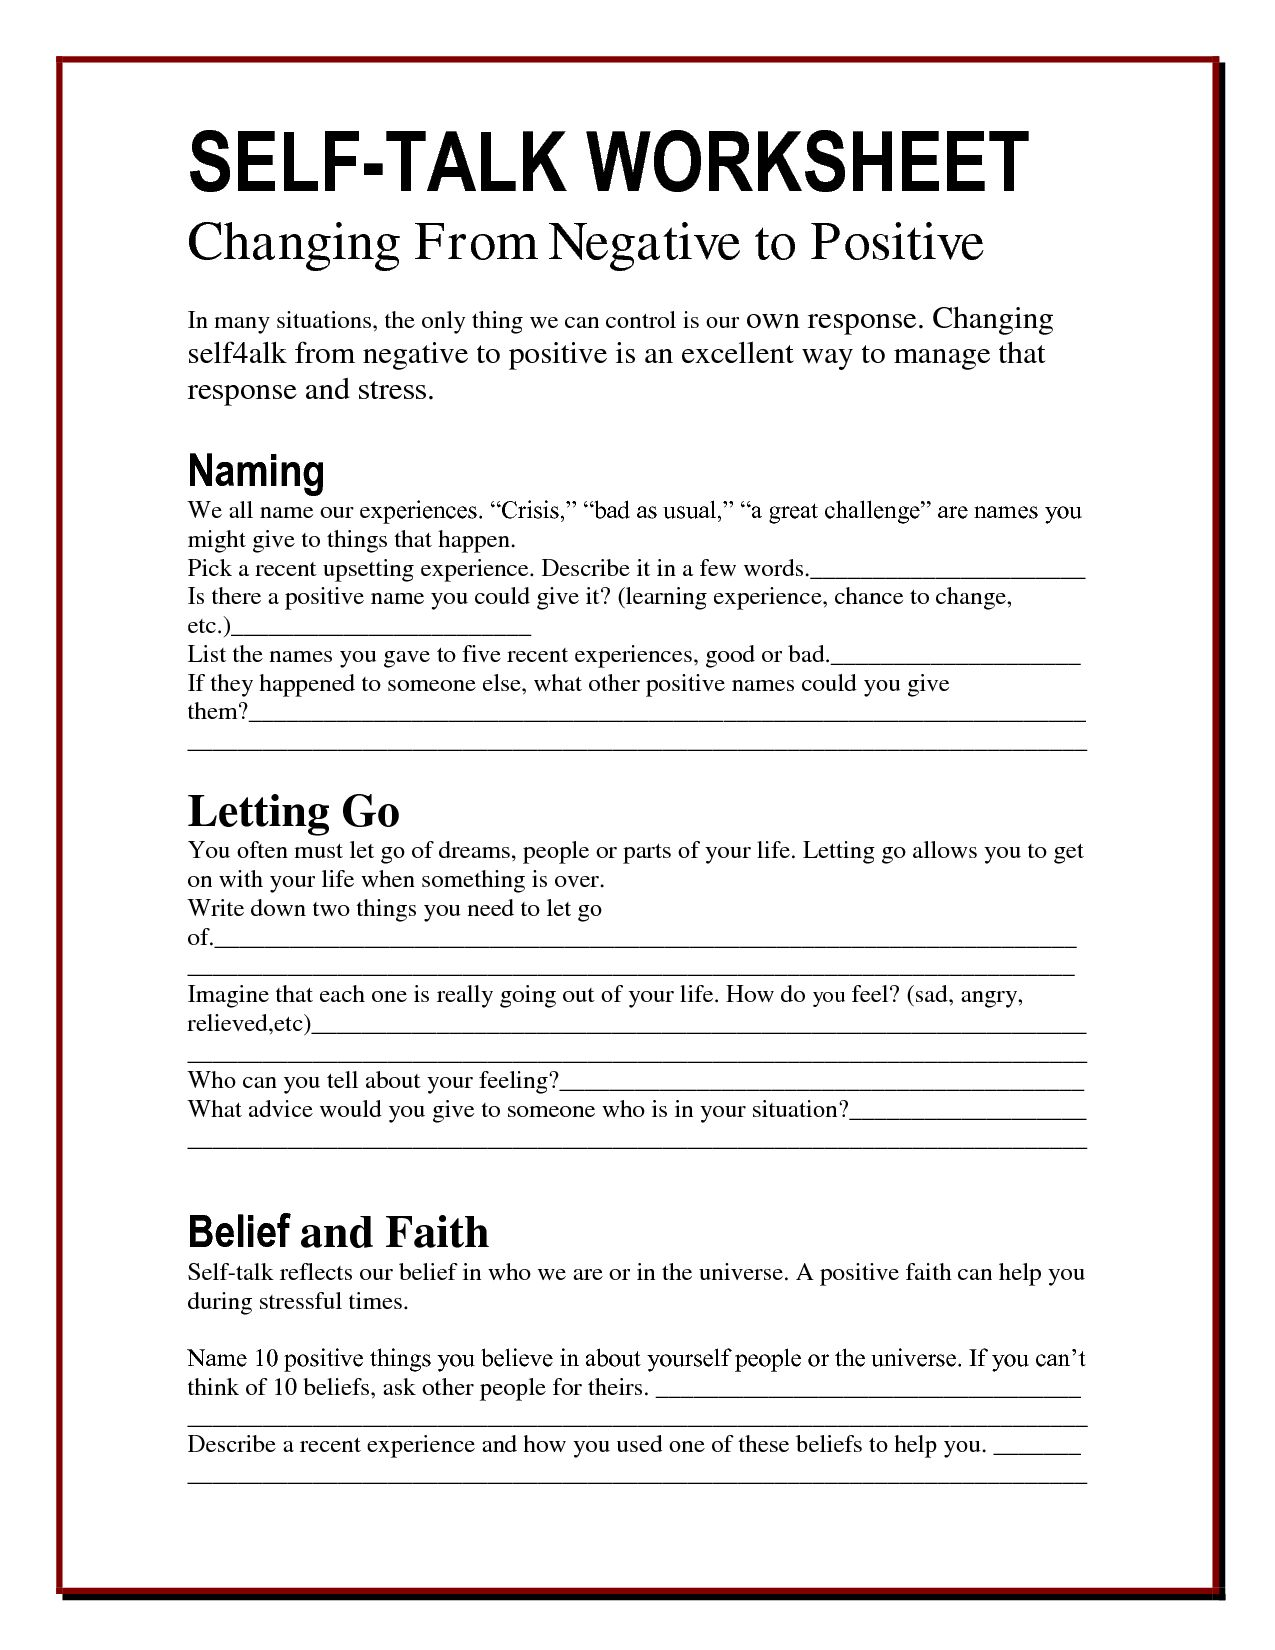 Worksheets Coping Skills Worksheets For Kids i statements preview trchild life pinterest worksheets self talk worksheet changing negative to positive behaviour